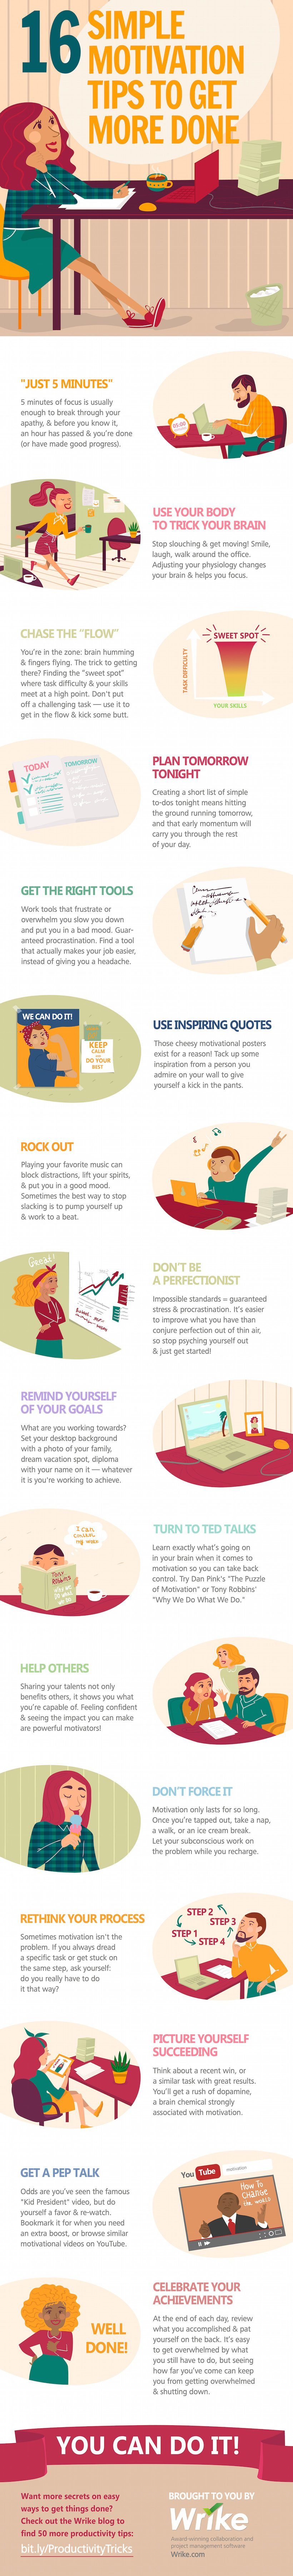 Save your business time with 16 different ways to get more work done